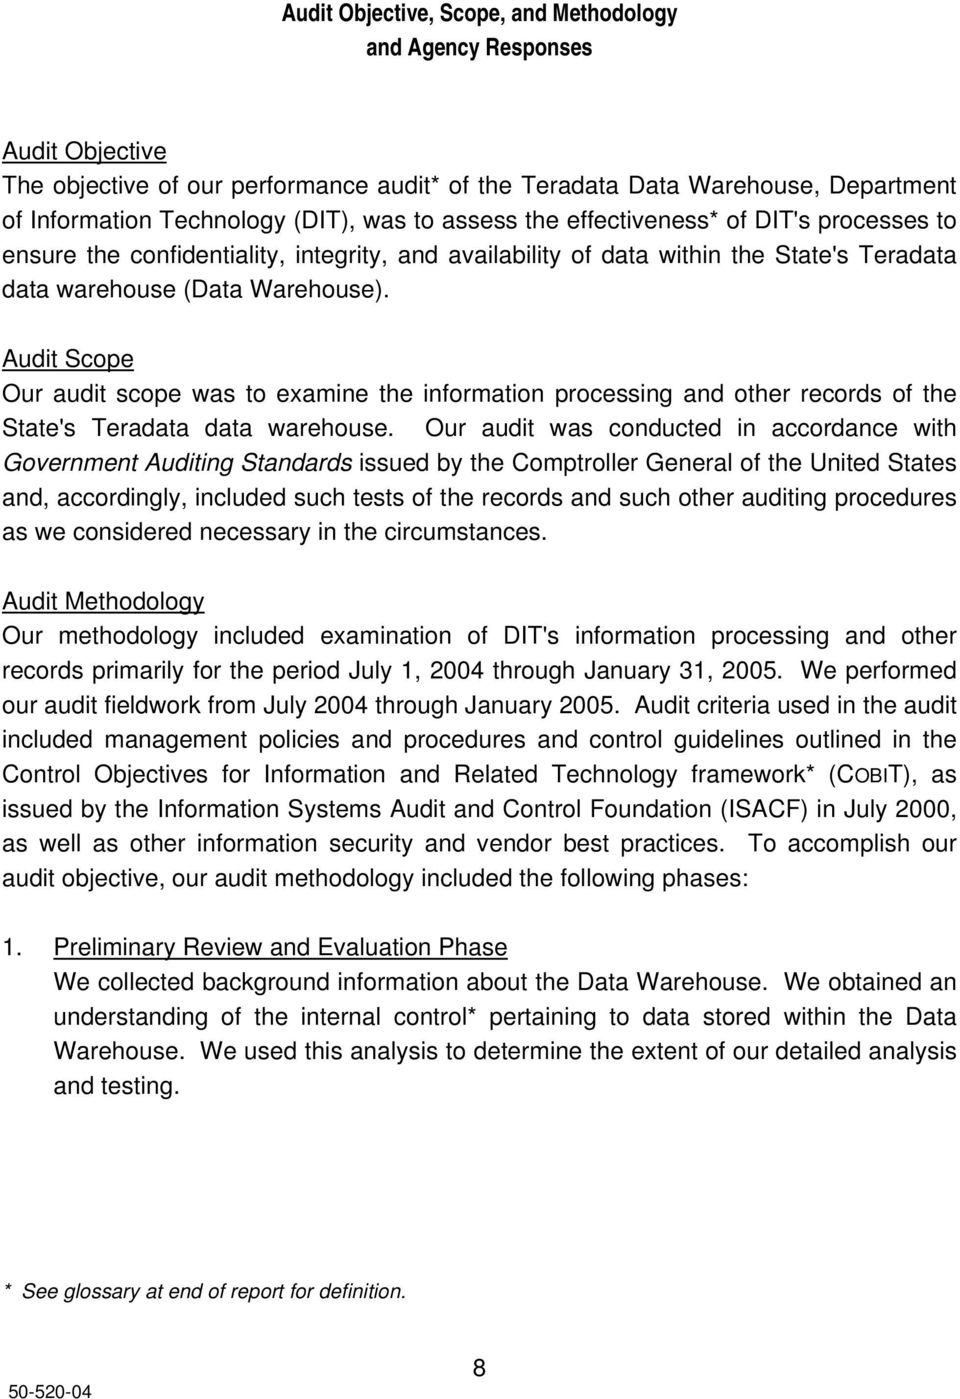 Audit Scope Our audit scope was to examine the information processing and other records of the State's Teradata data warehouse.